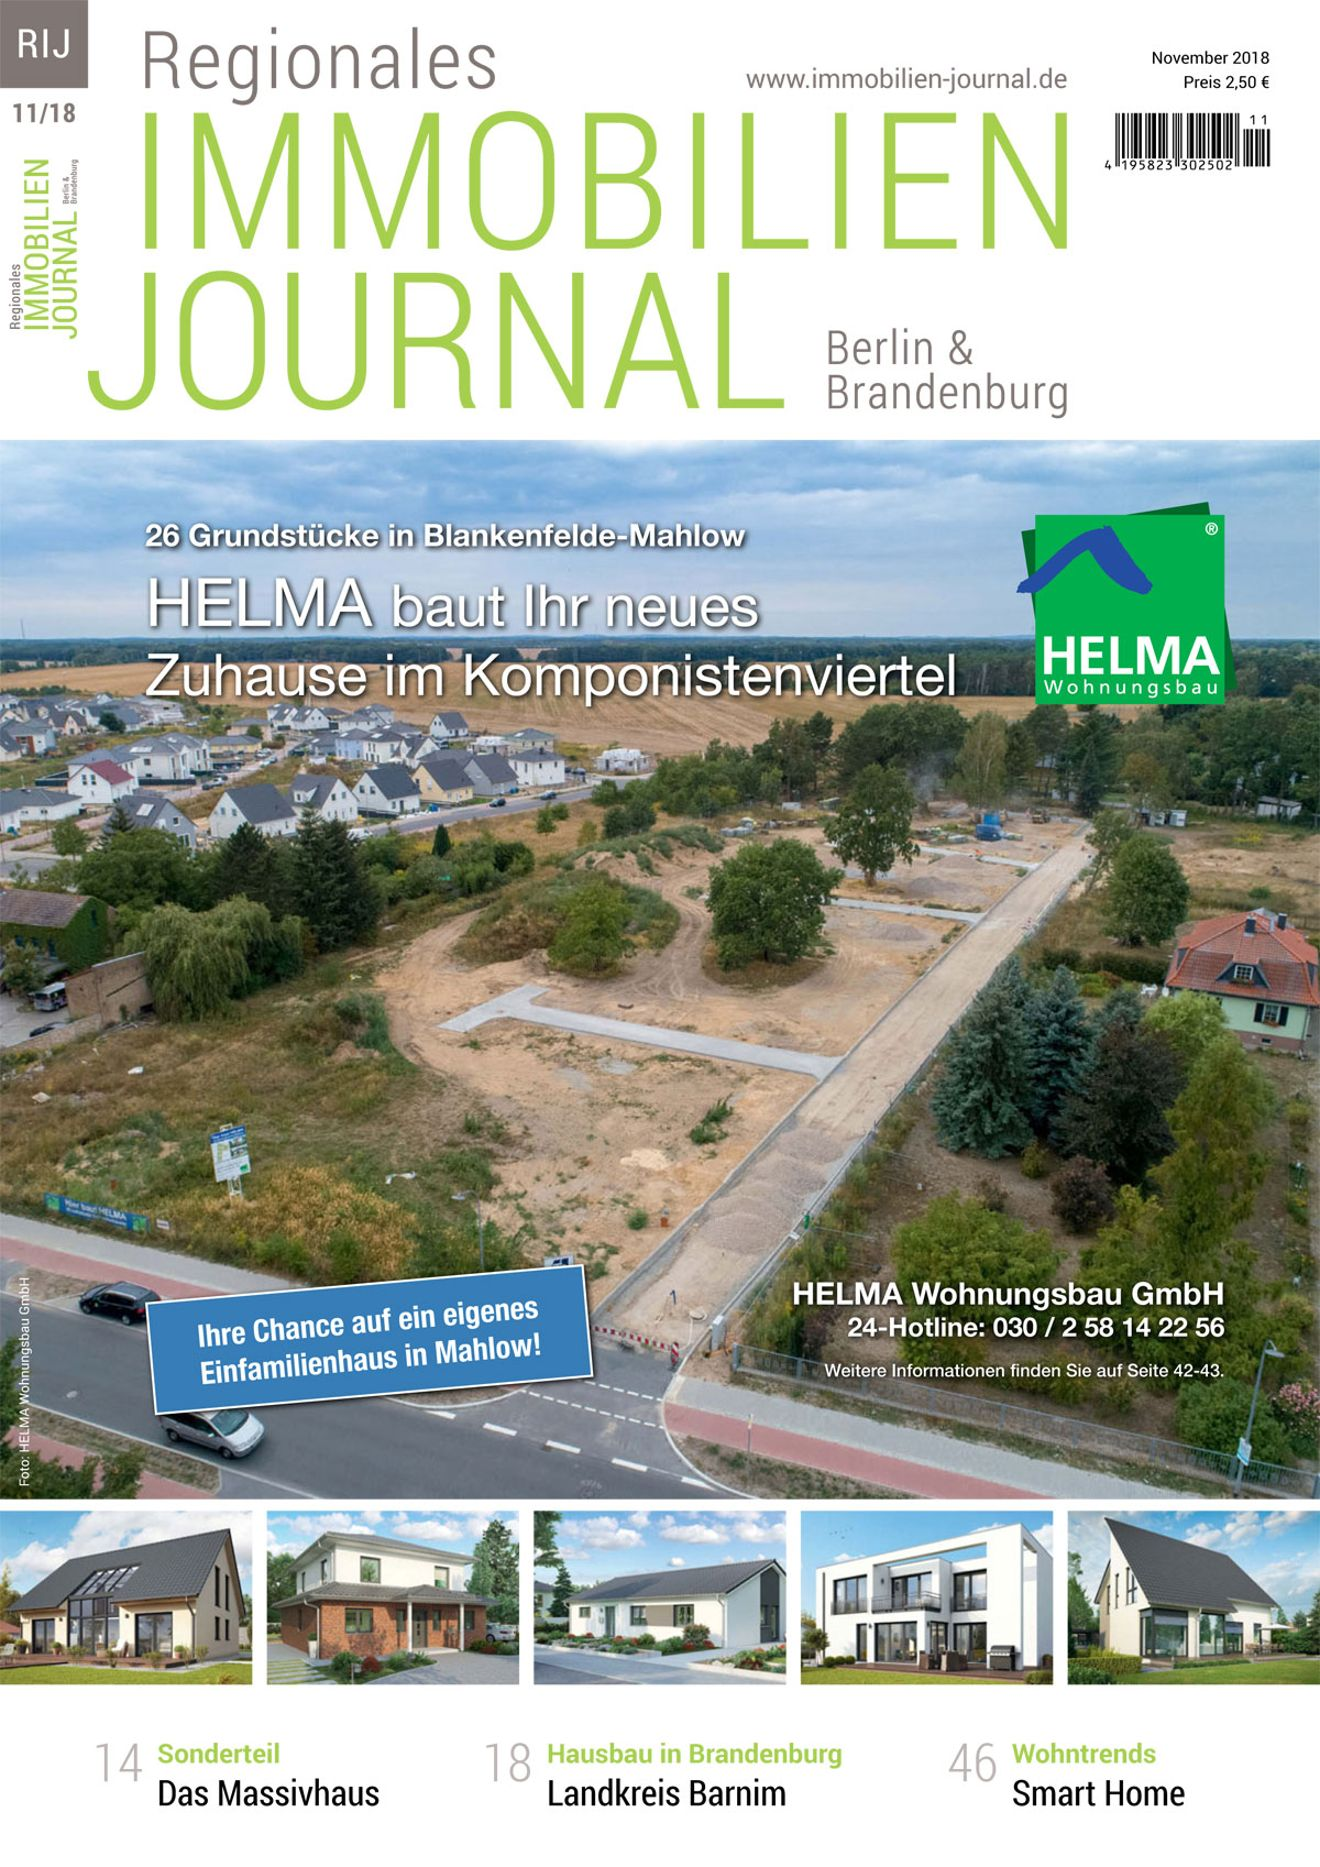 Regionales Immobilien Journal Berlin & Brandenburg November 2018